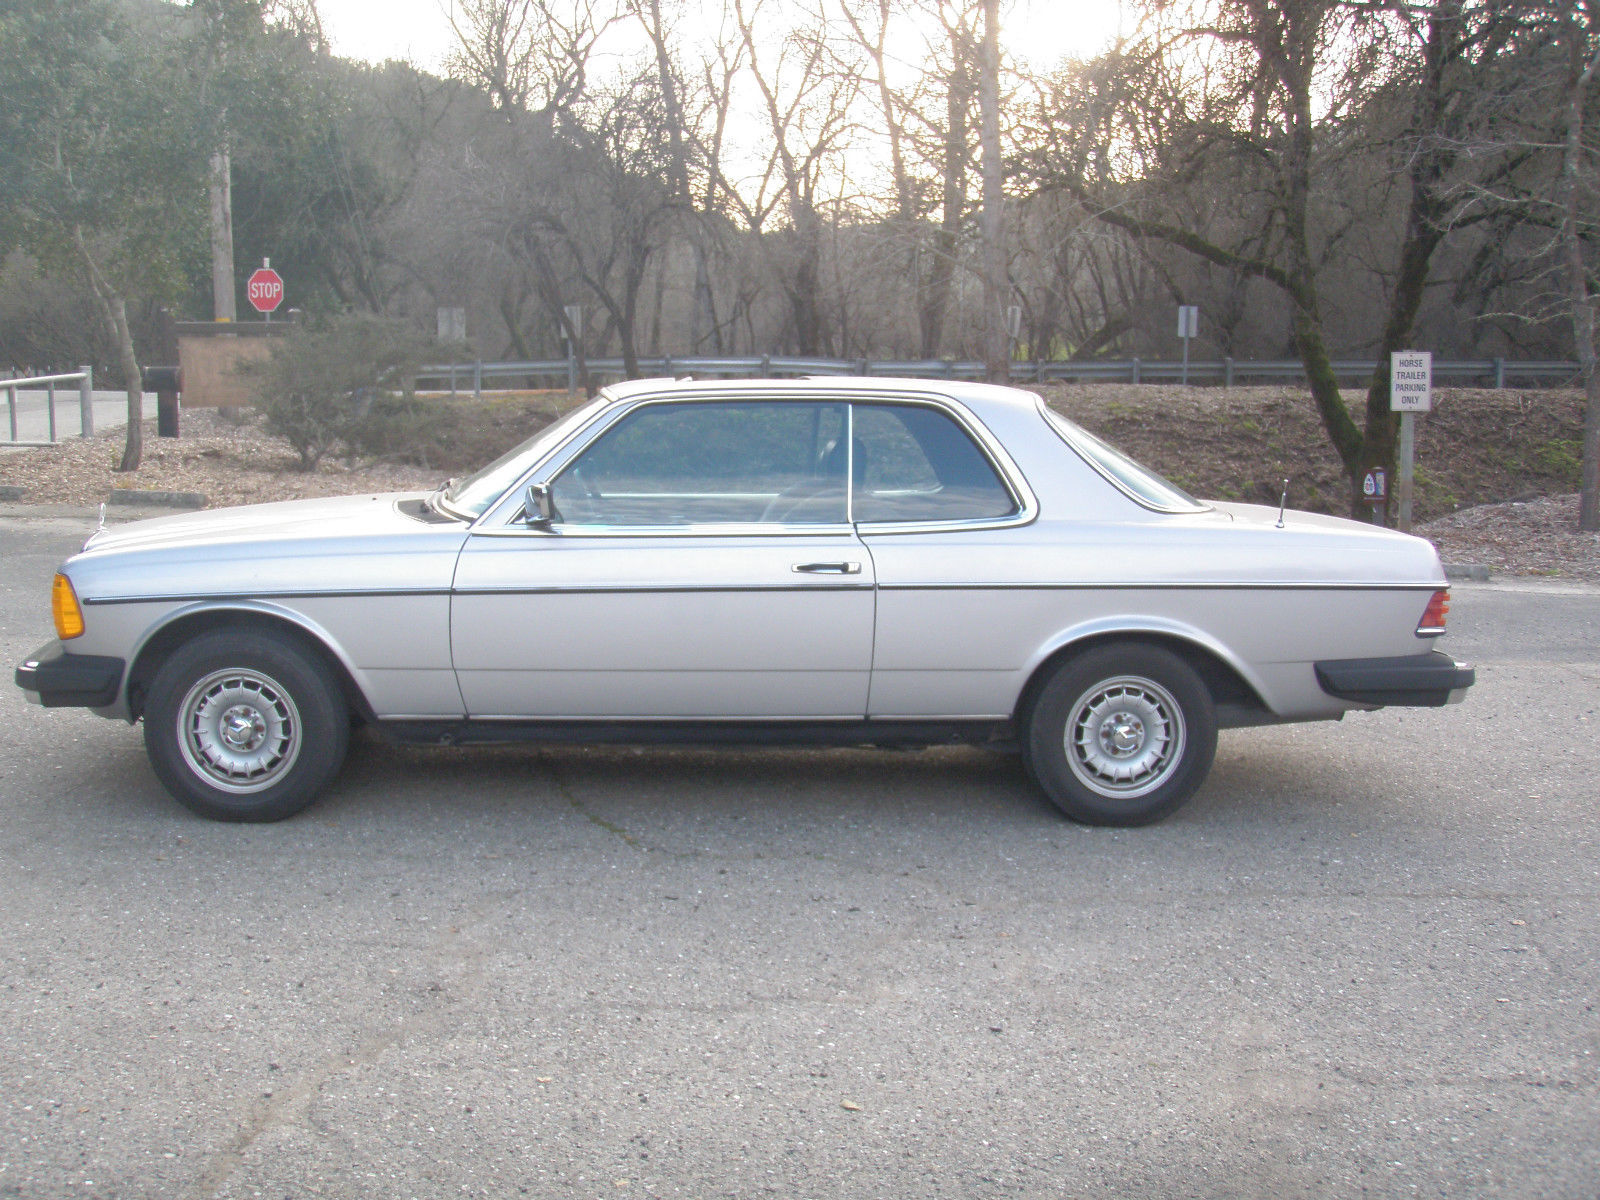 1982 Mercedes Benz, 300CD, Turbo-Diesel coupe, California